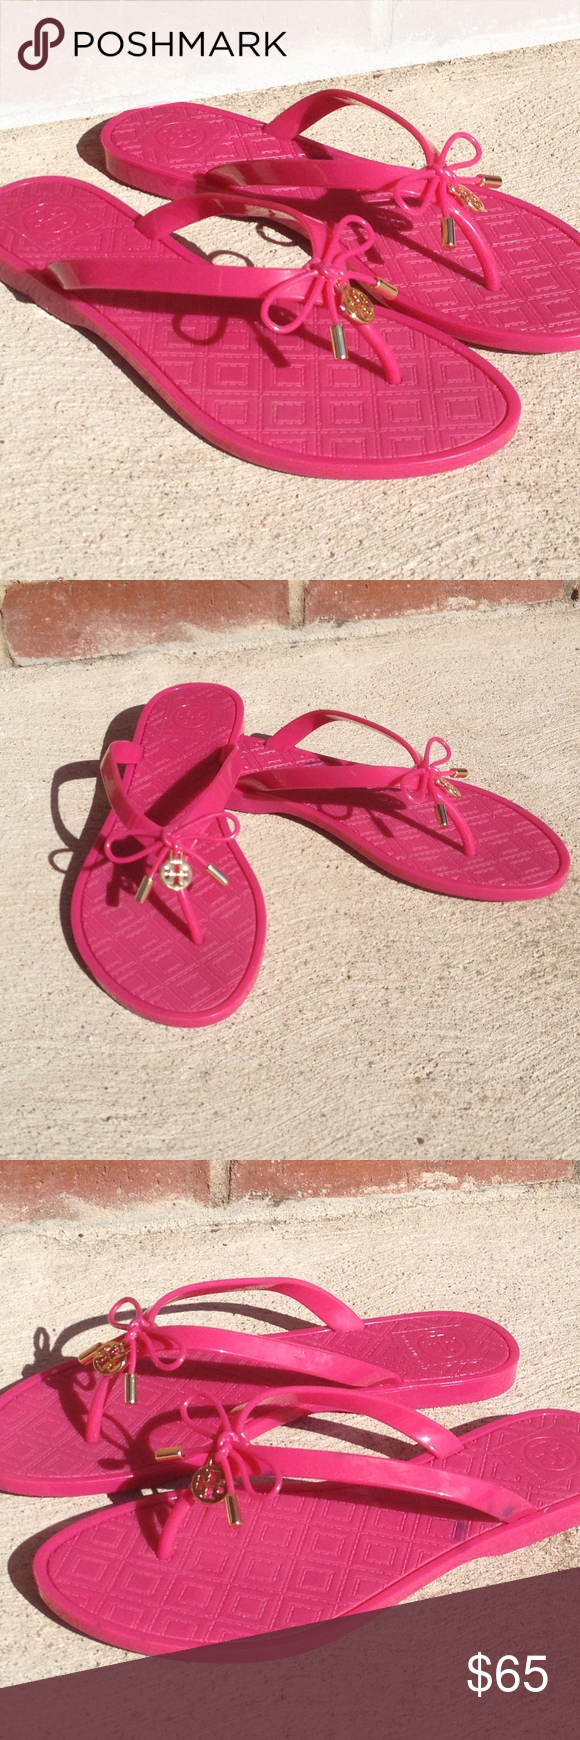 120b0a6607956 Tory Burch Jelly Bow Logo-Charm Thong Sandal Tory Burch rubber jelly slide  sandal. Features a flat heel